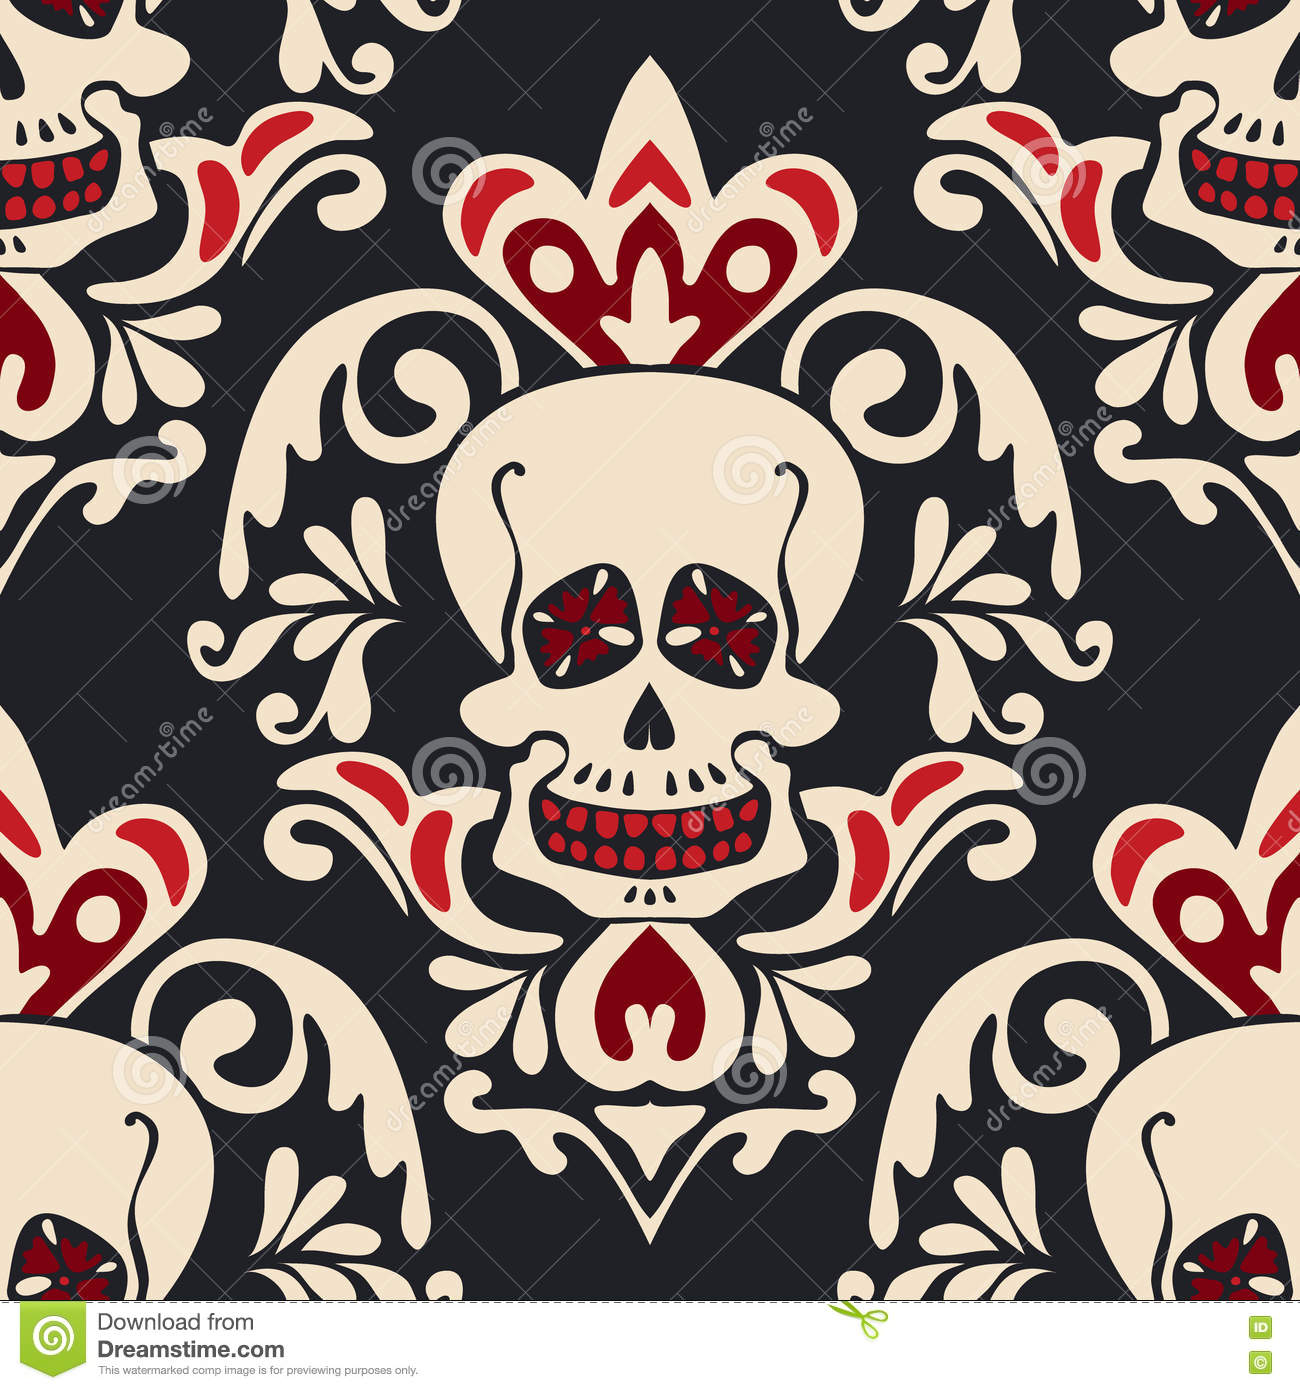 Download Victorian Gothic Skull Vector Damask Pattern Stock